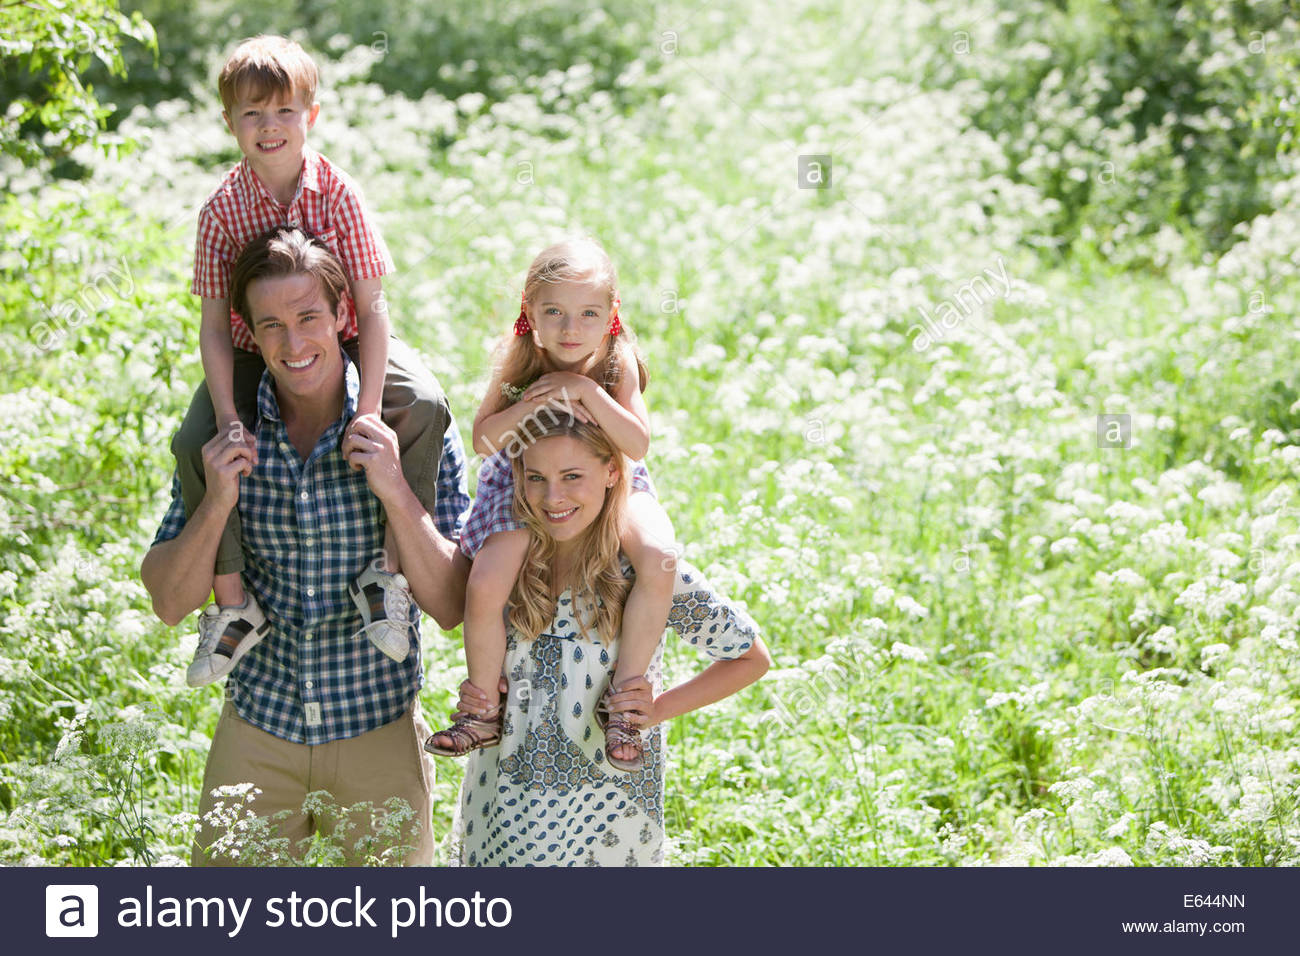 Parents holding children on shoulders in park - Stock Image